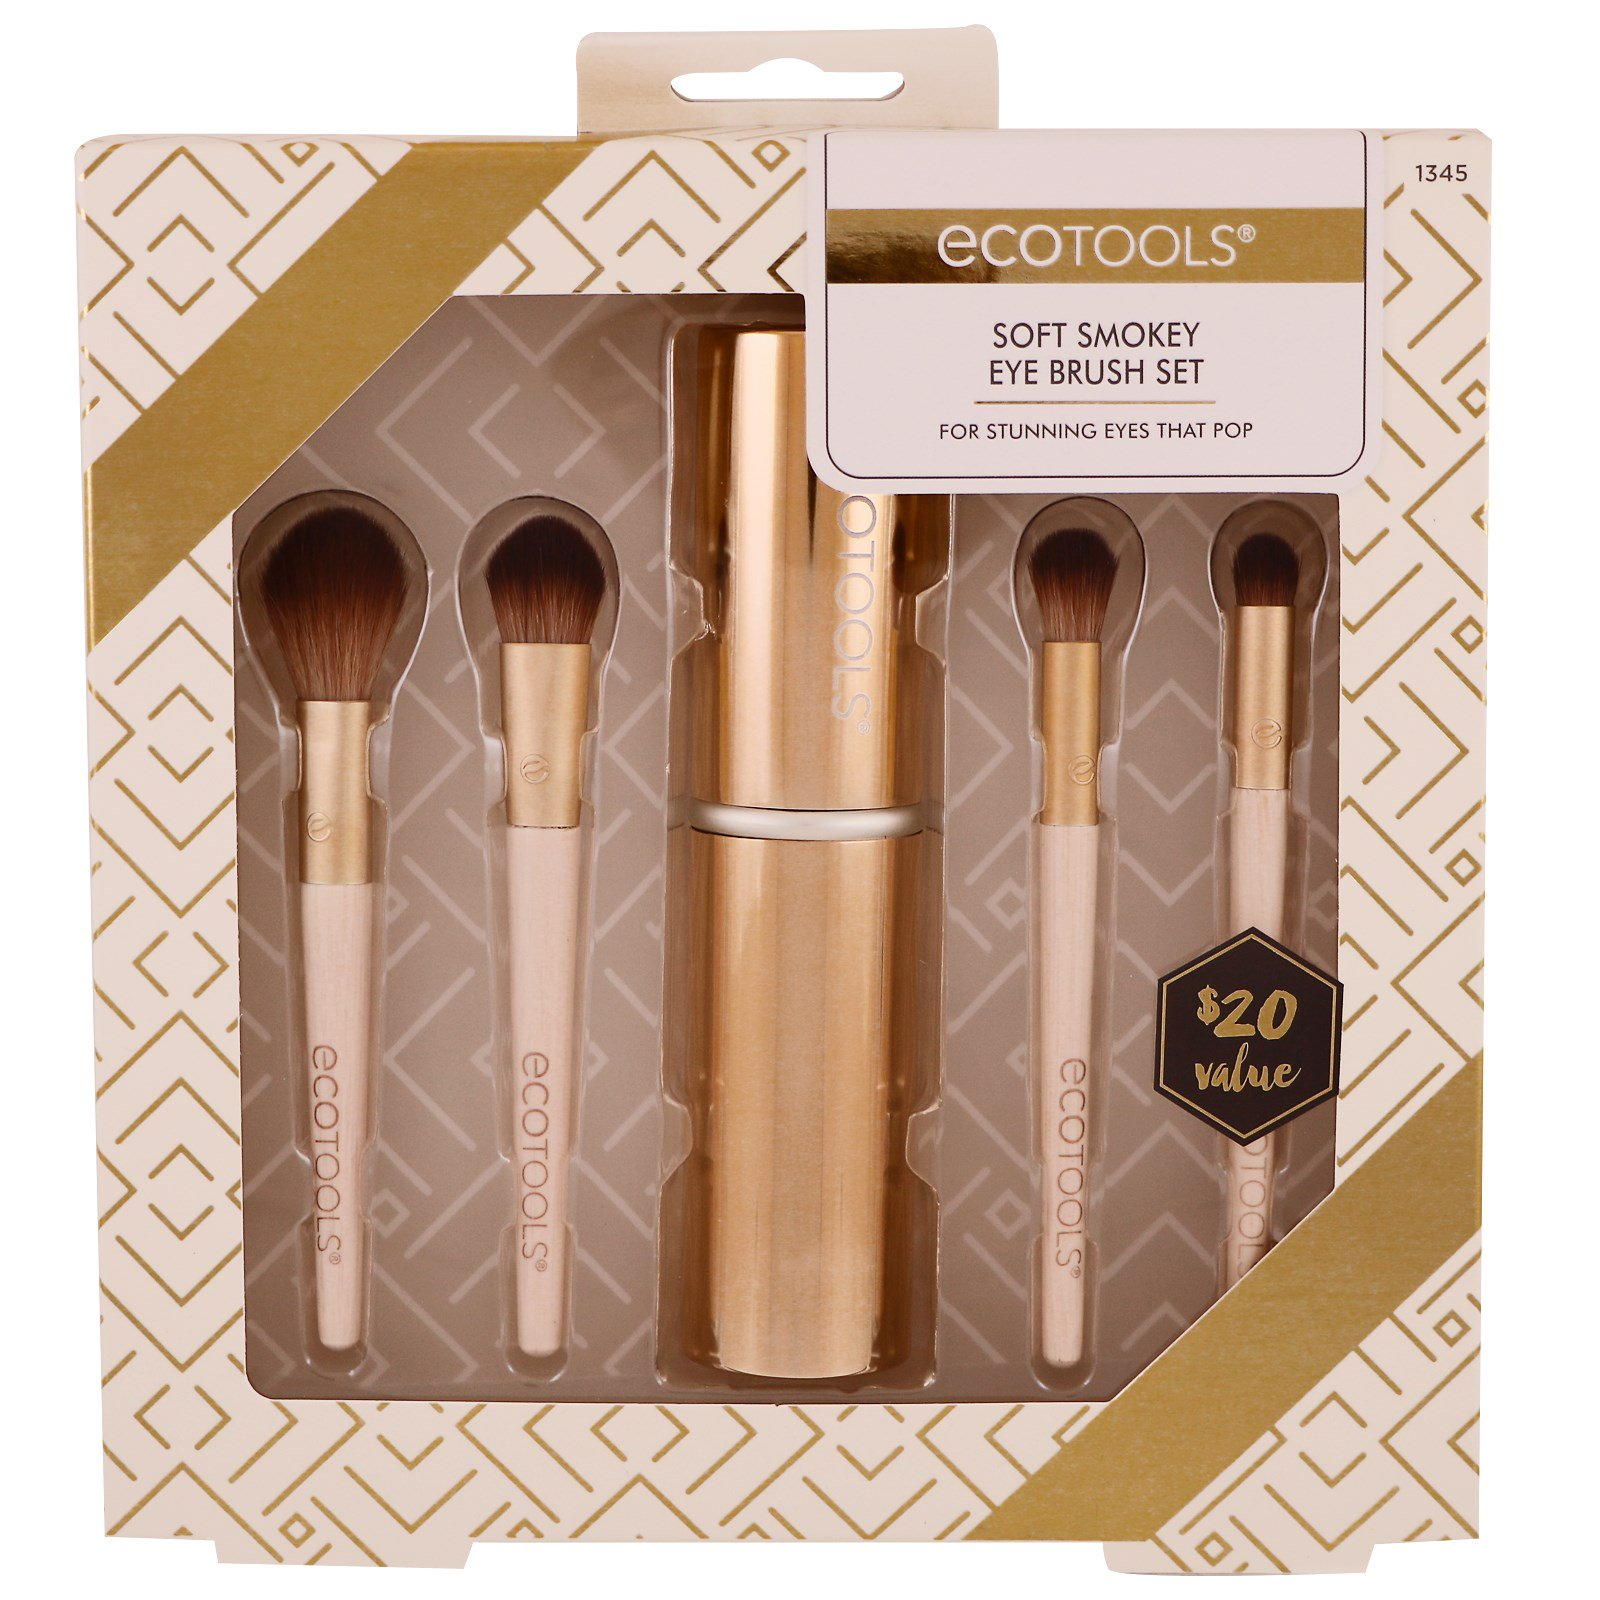 Ecotools Gold Collection Soft Smokey Eye Brush Set 4 Brushes 1 Case